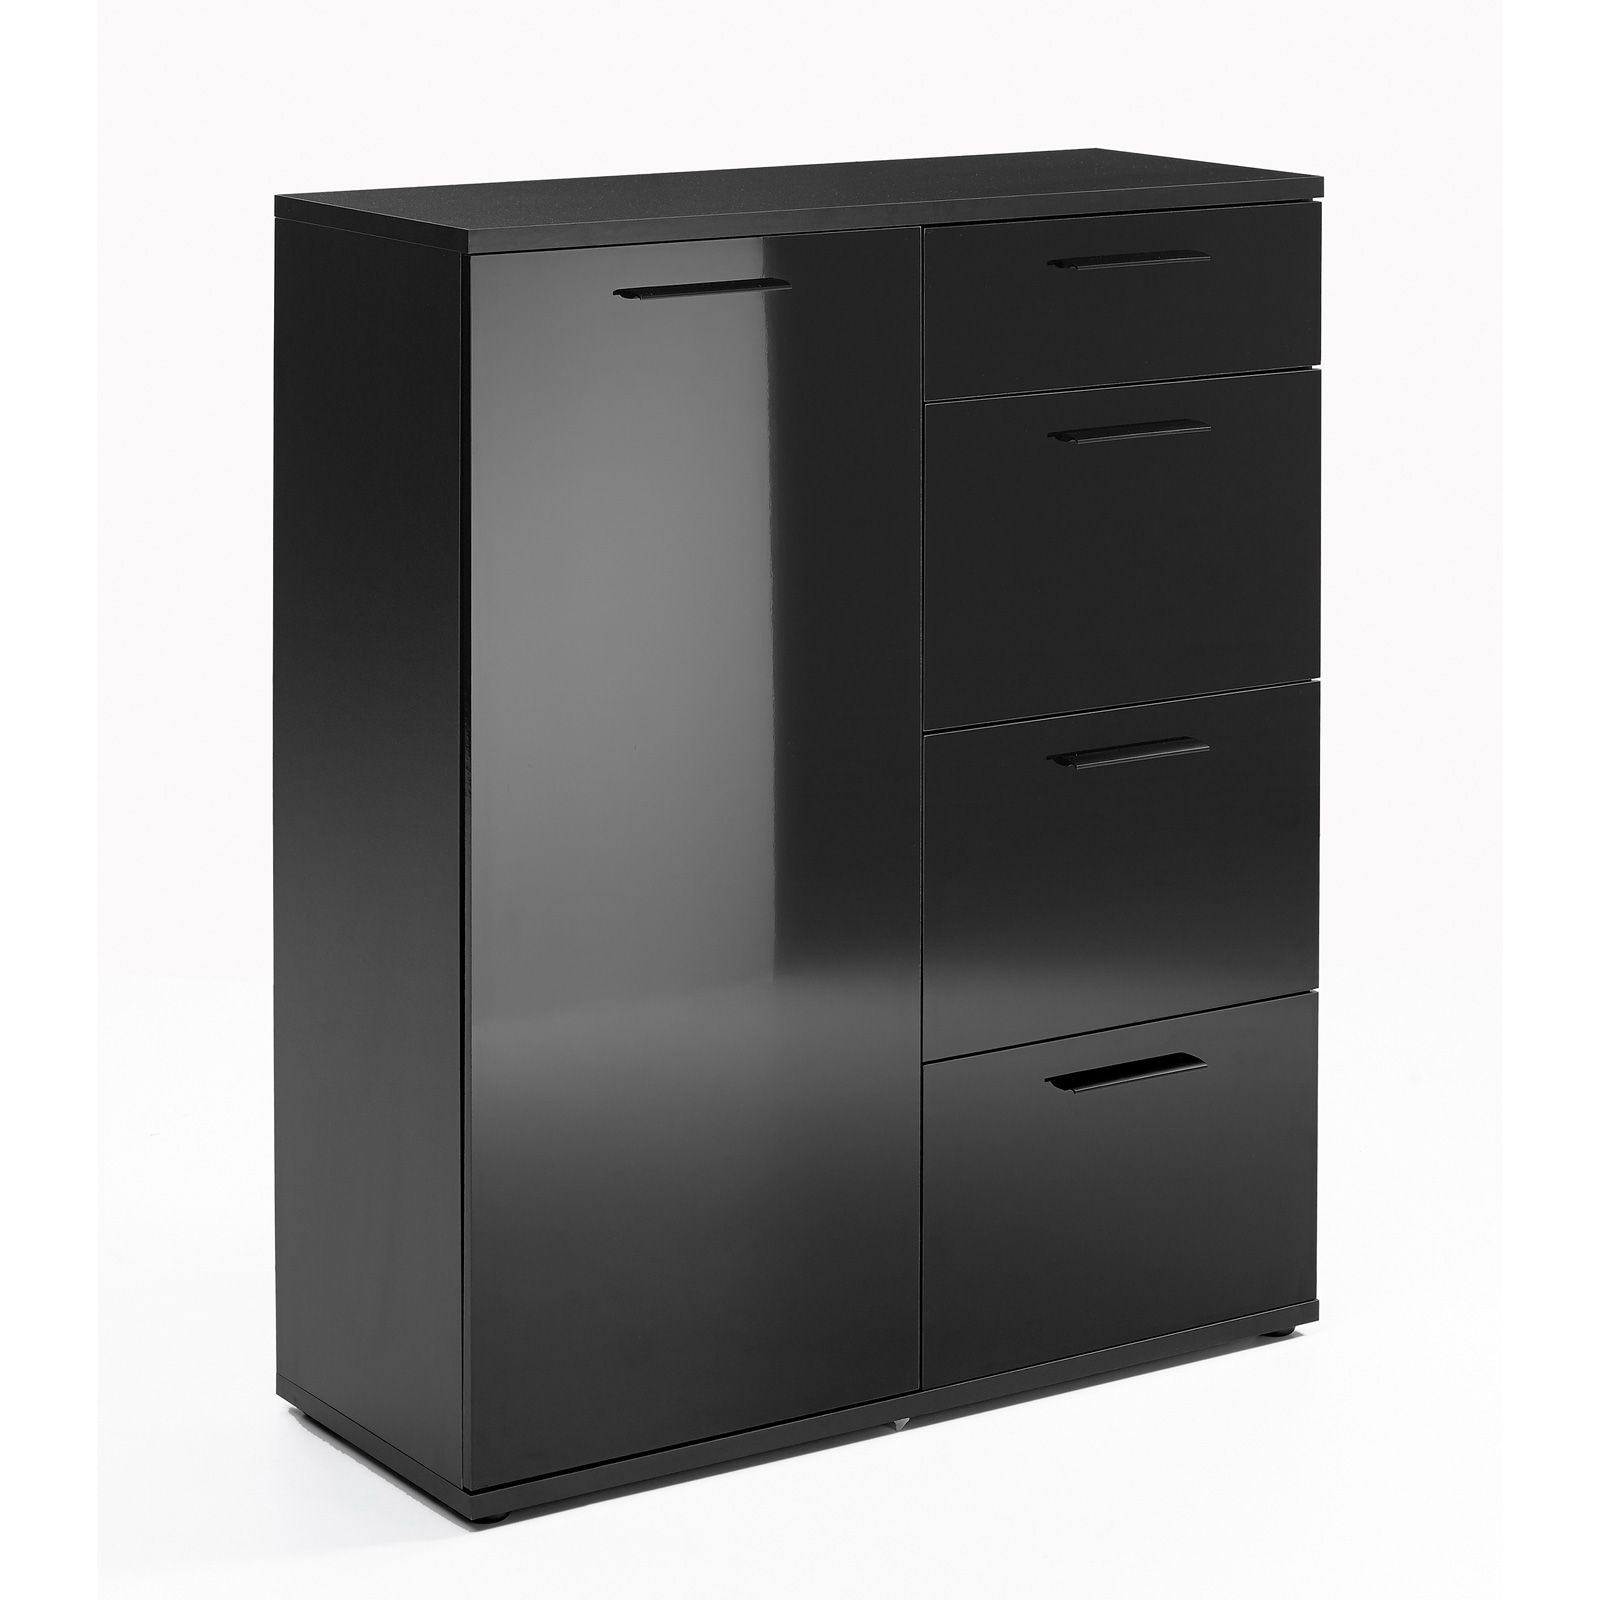 mehrzweckkommode dublin kommode anrichte schwarz hochglanz 3 varianten auswahl ebay. Black Bedroom Furniture Sets. Home Design Ideas